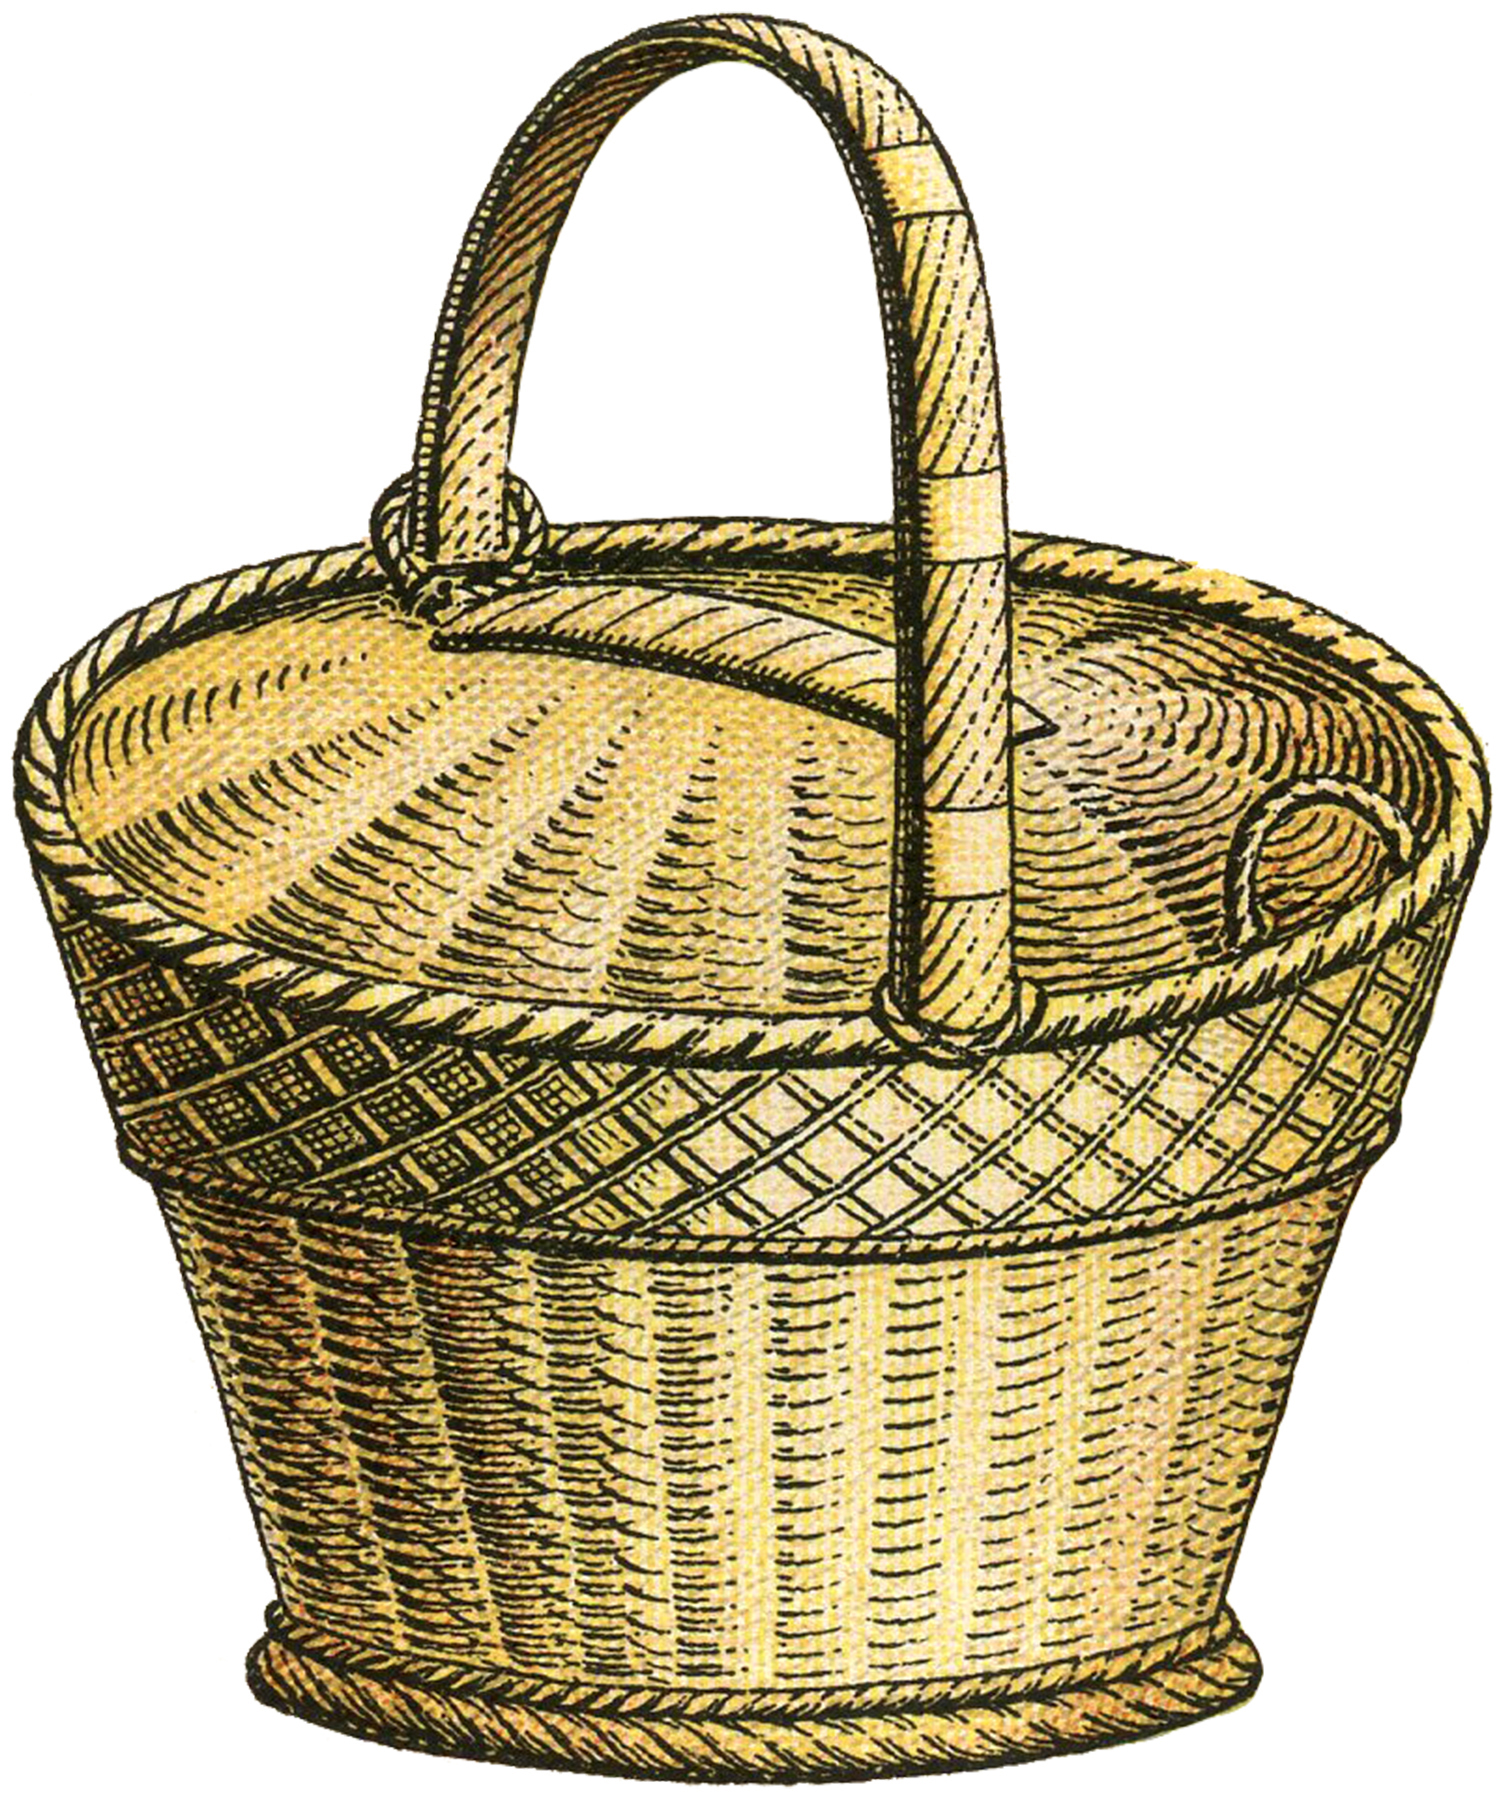 Wicker basket image the graphics fairy for Clipart basket